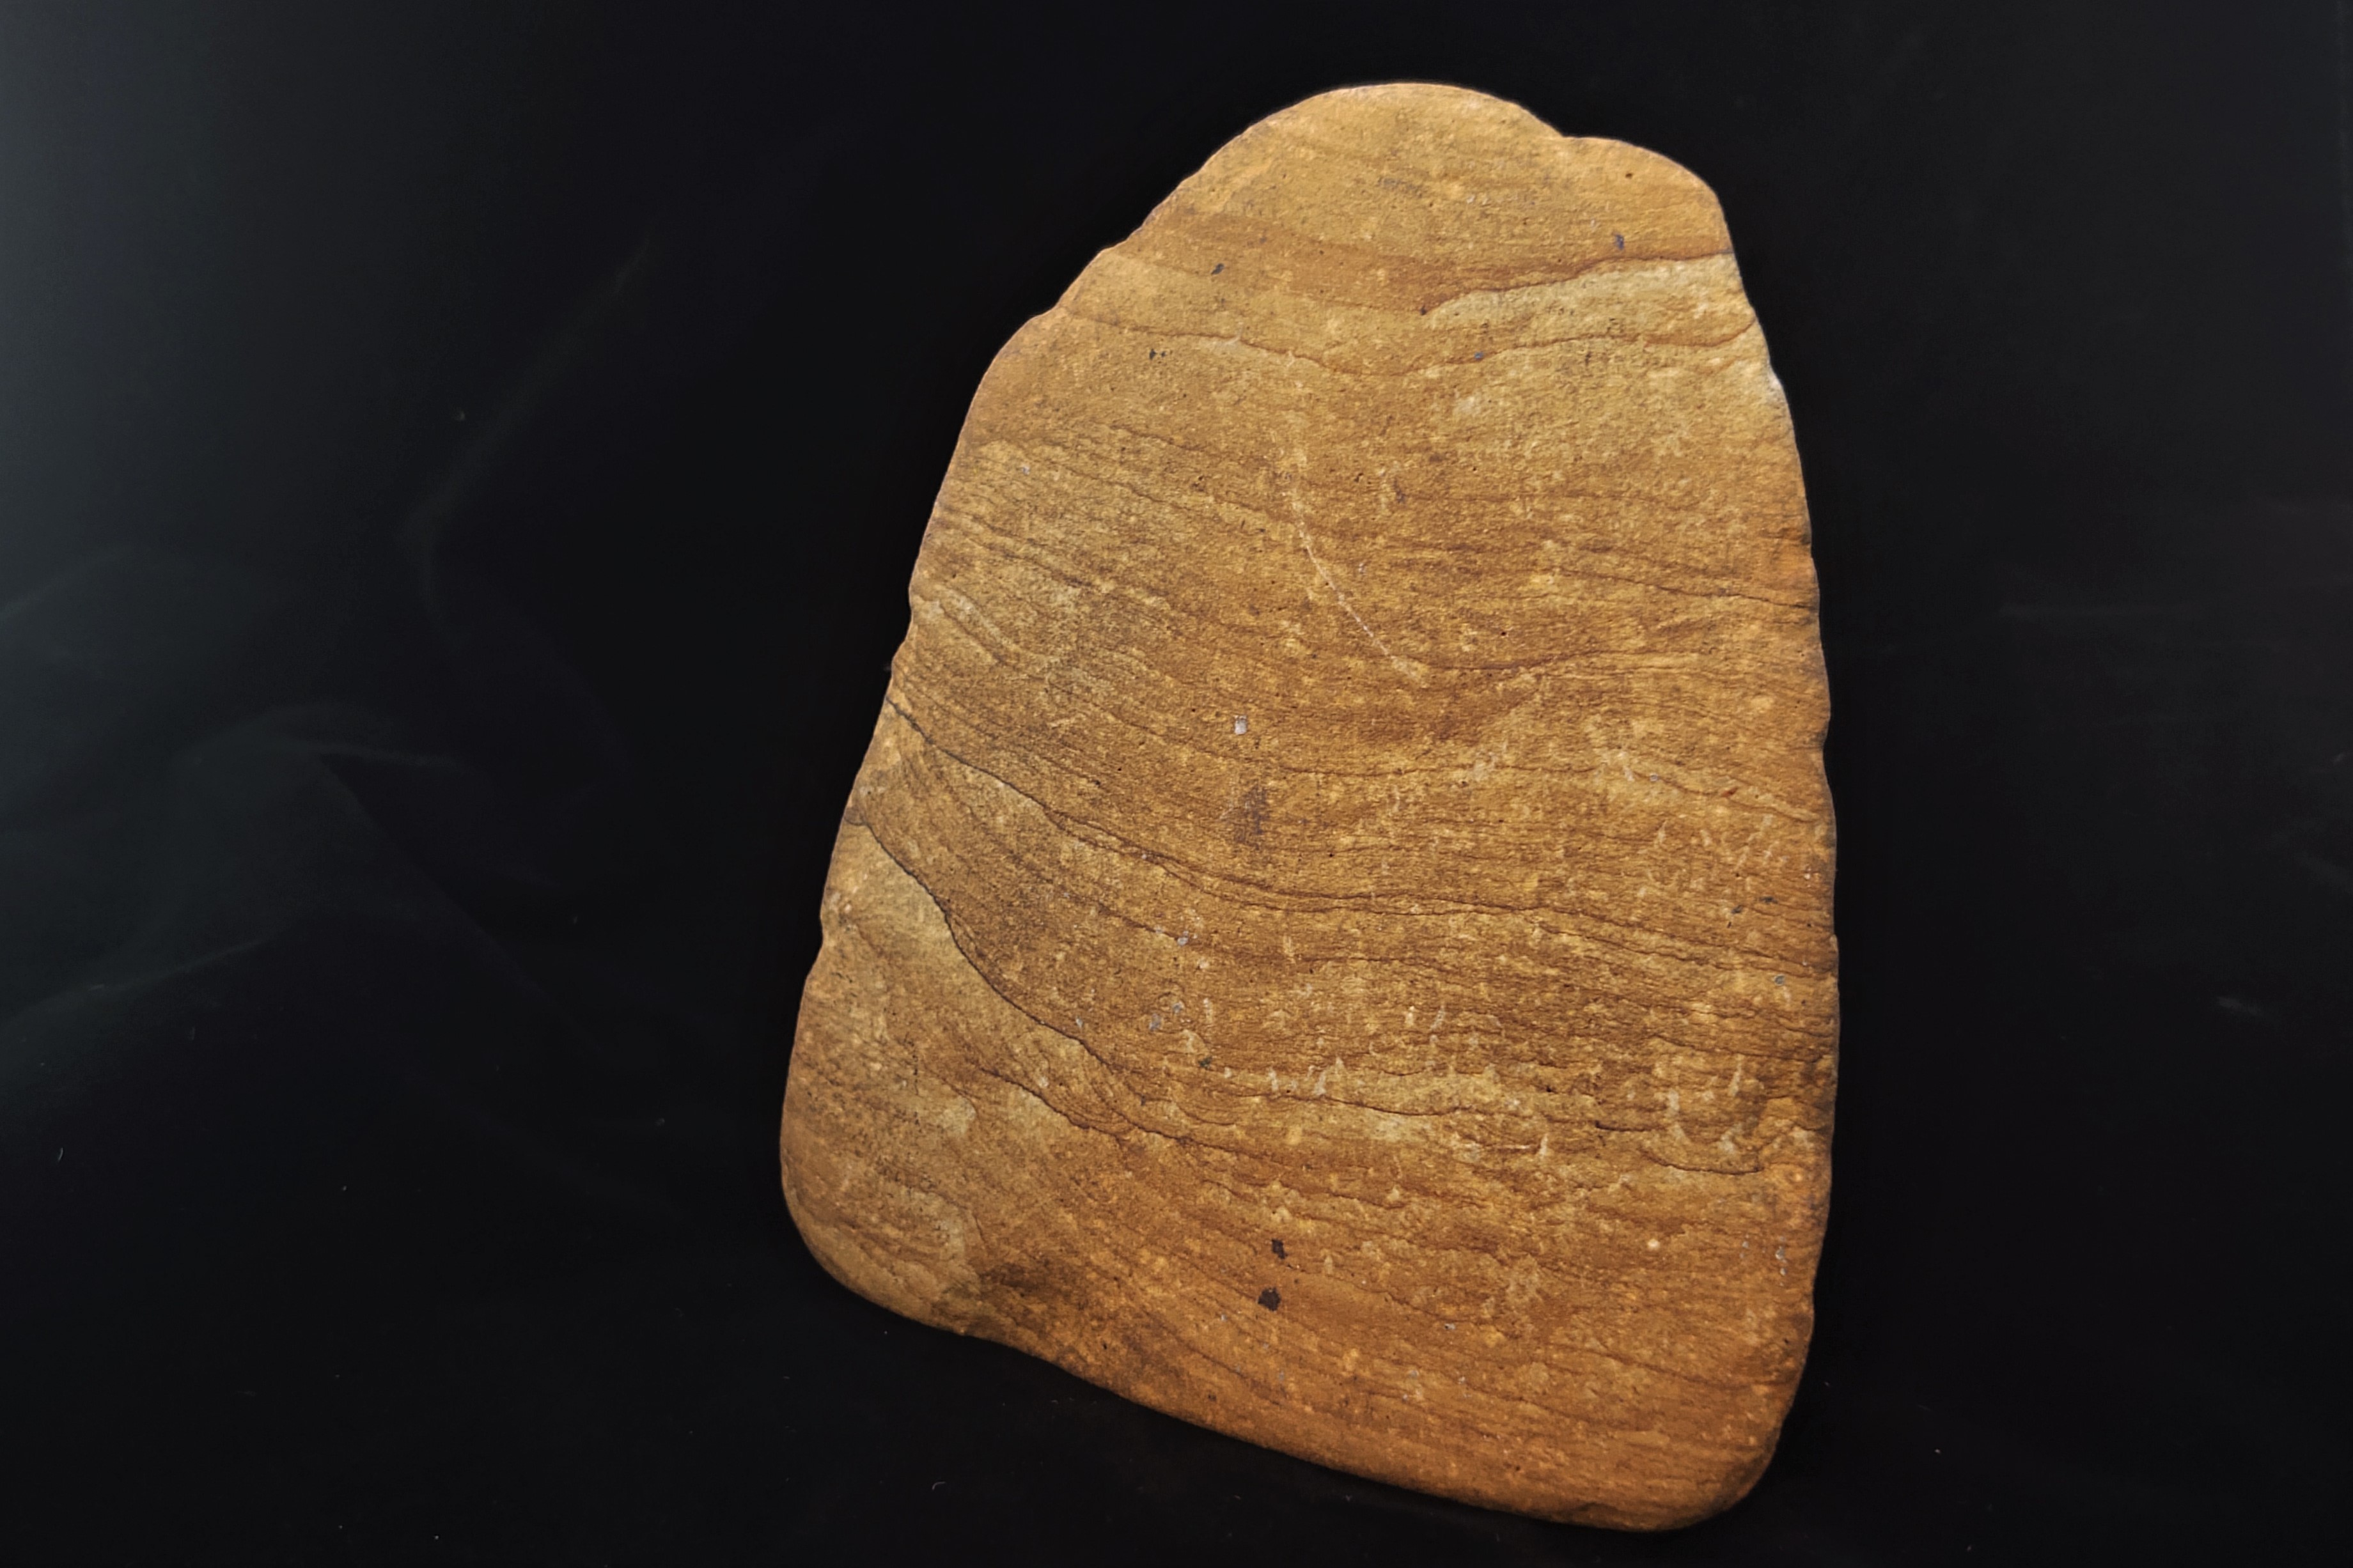 A piece of sandstone